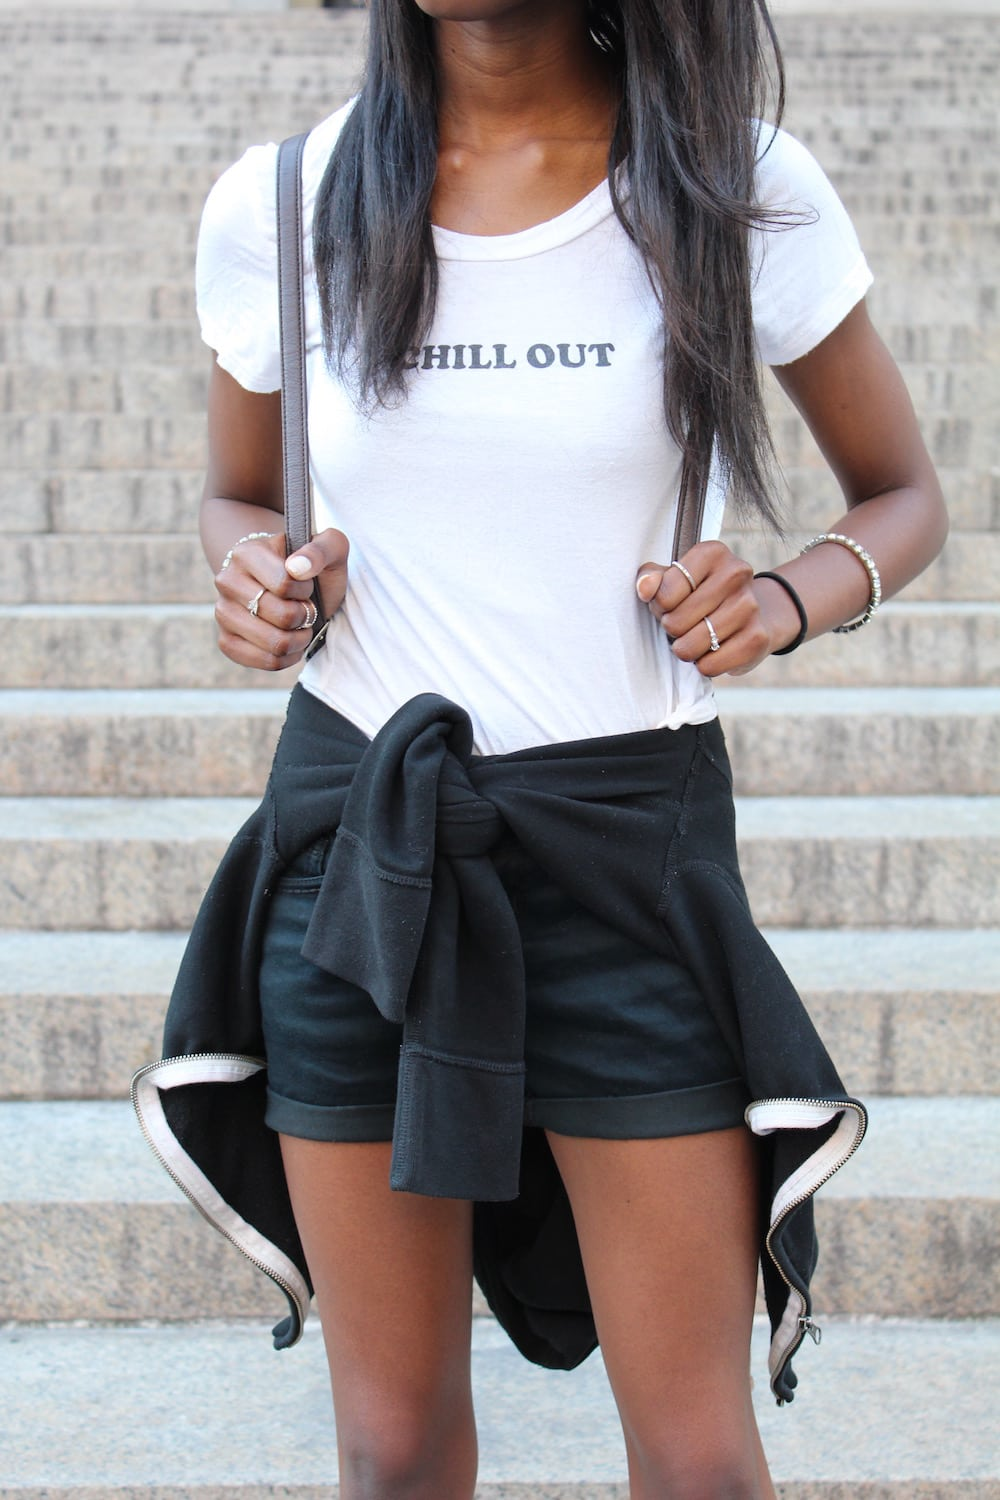 College fashion trends: Graphic tee with the words Chill Out worn by a University of Missouri fashionista in NYC